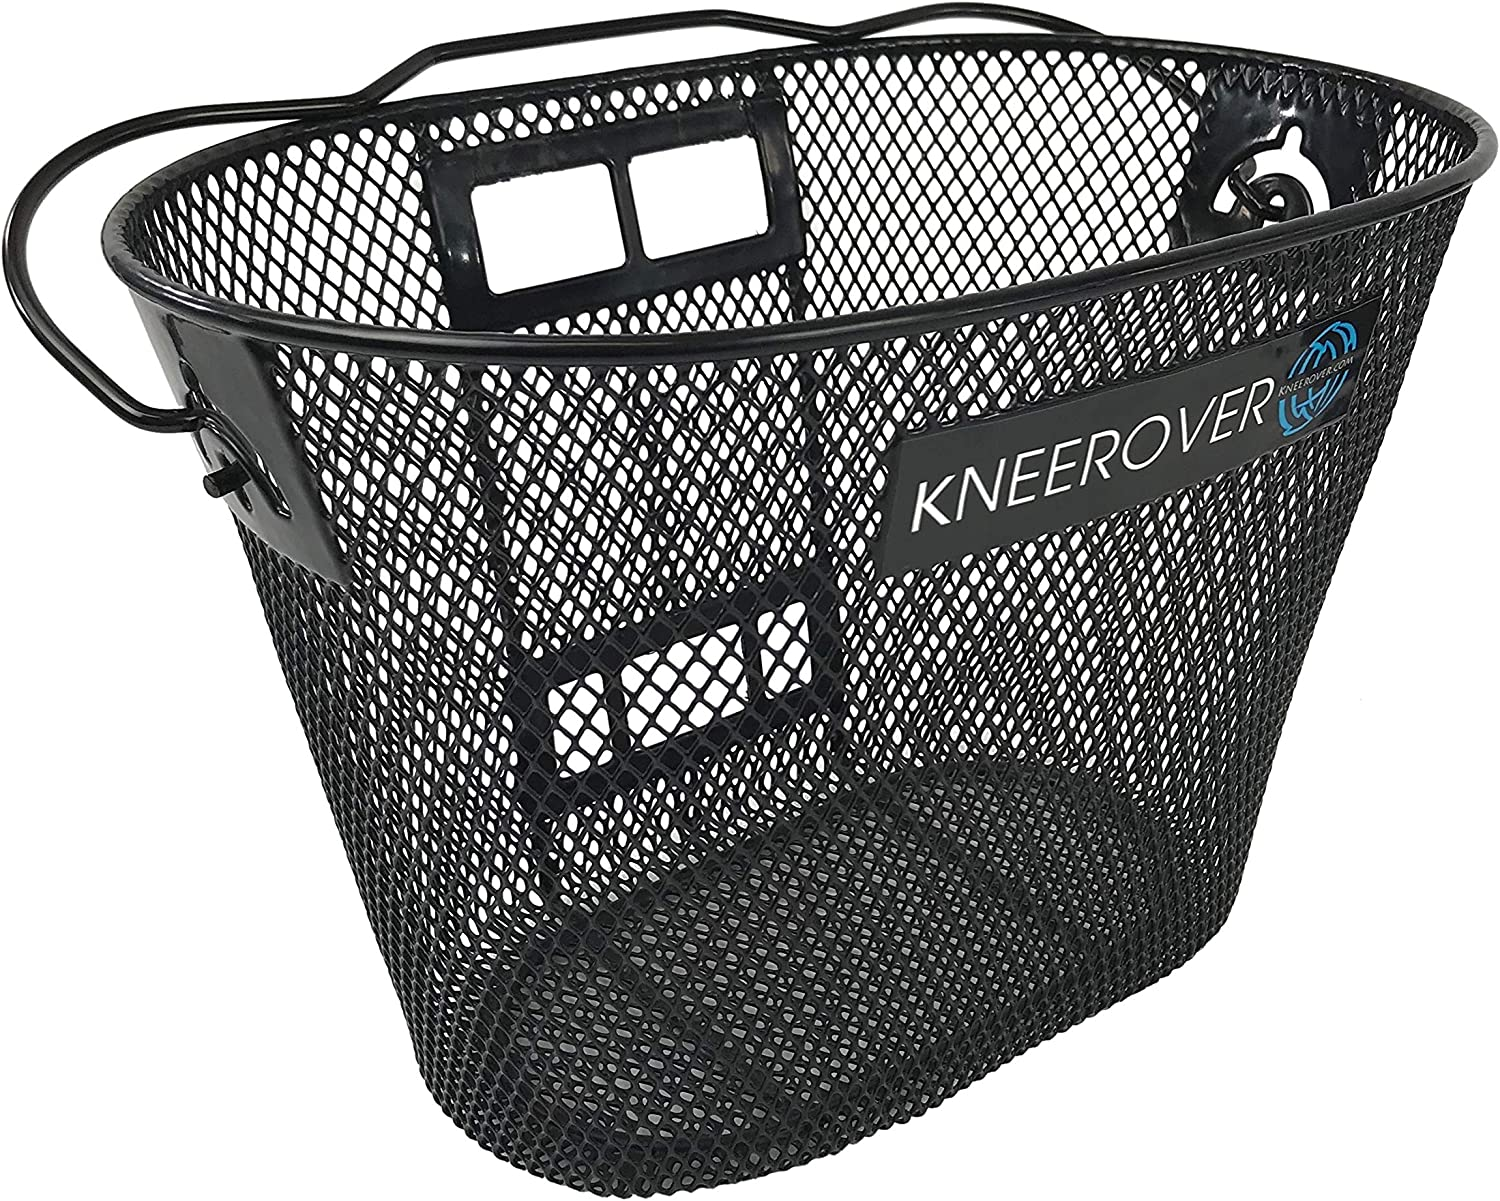 Knee Walker Basket Accessory - Replacement Part with Quick Release and Convenient Handle - INCLUDES ATTACHMENT BRACKET - Compatible with Most Knee Scooters 91S-apPVJvL